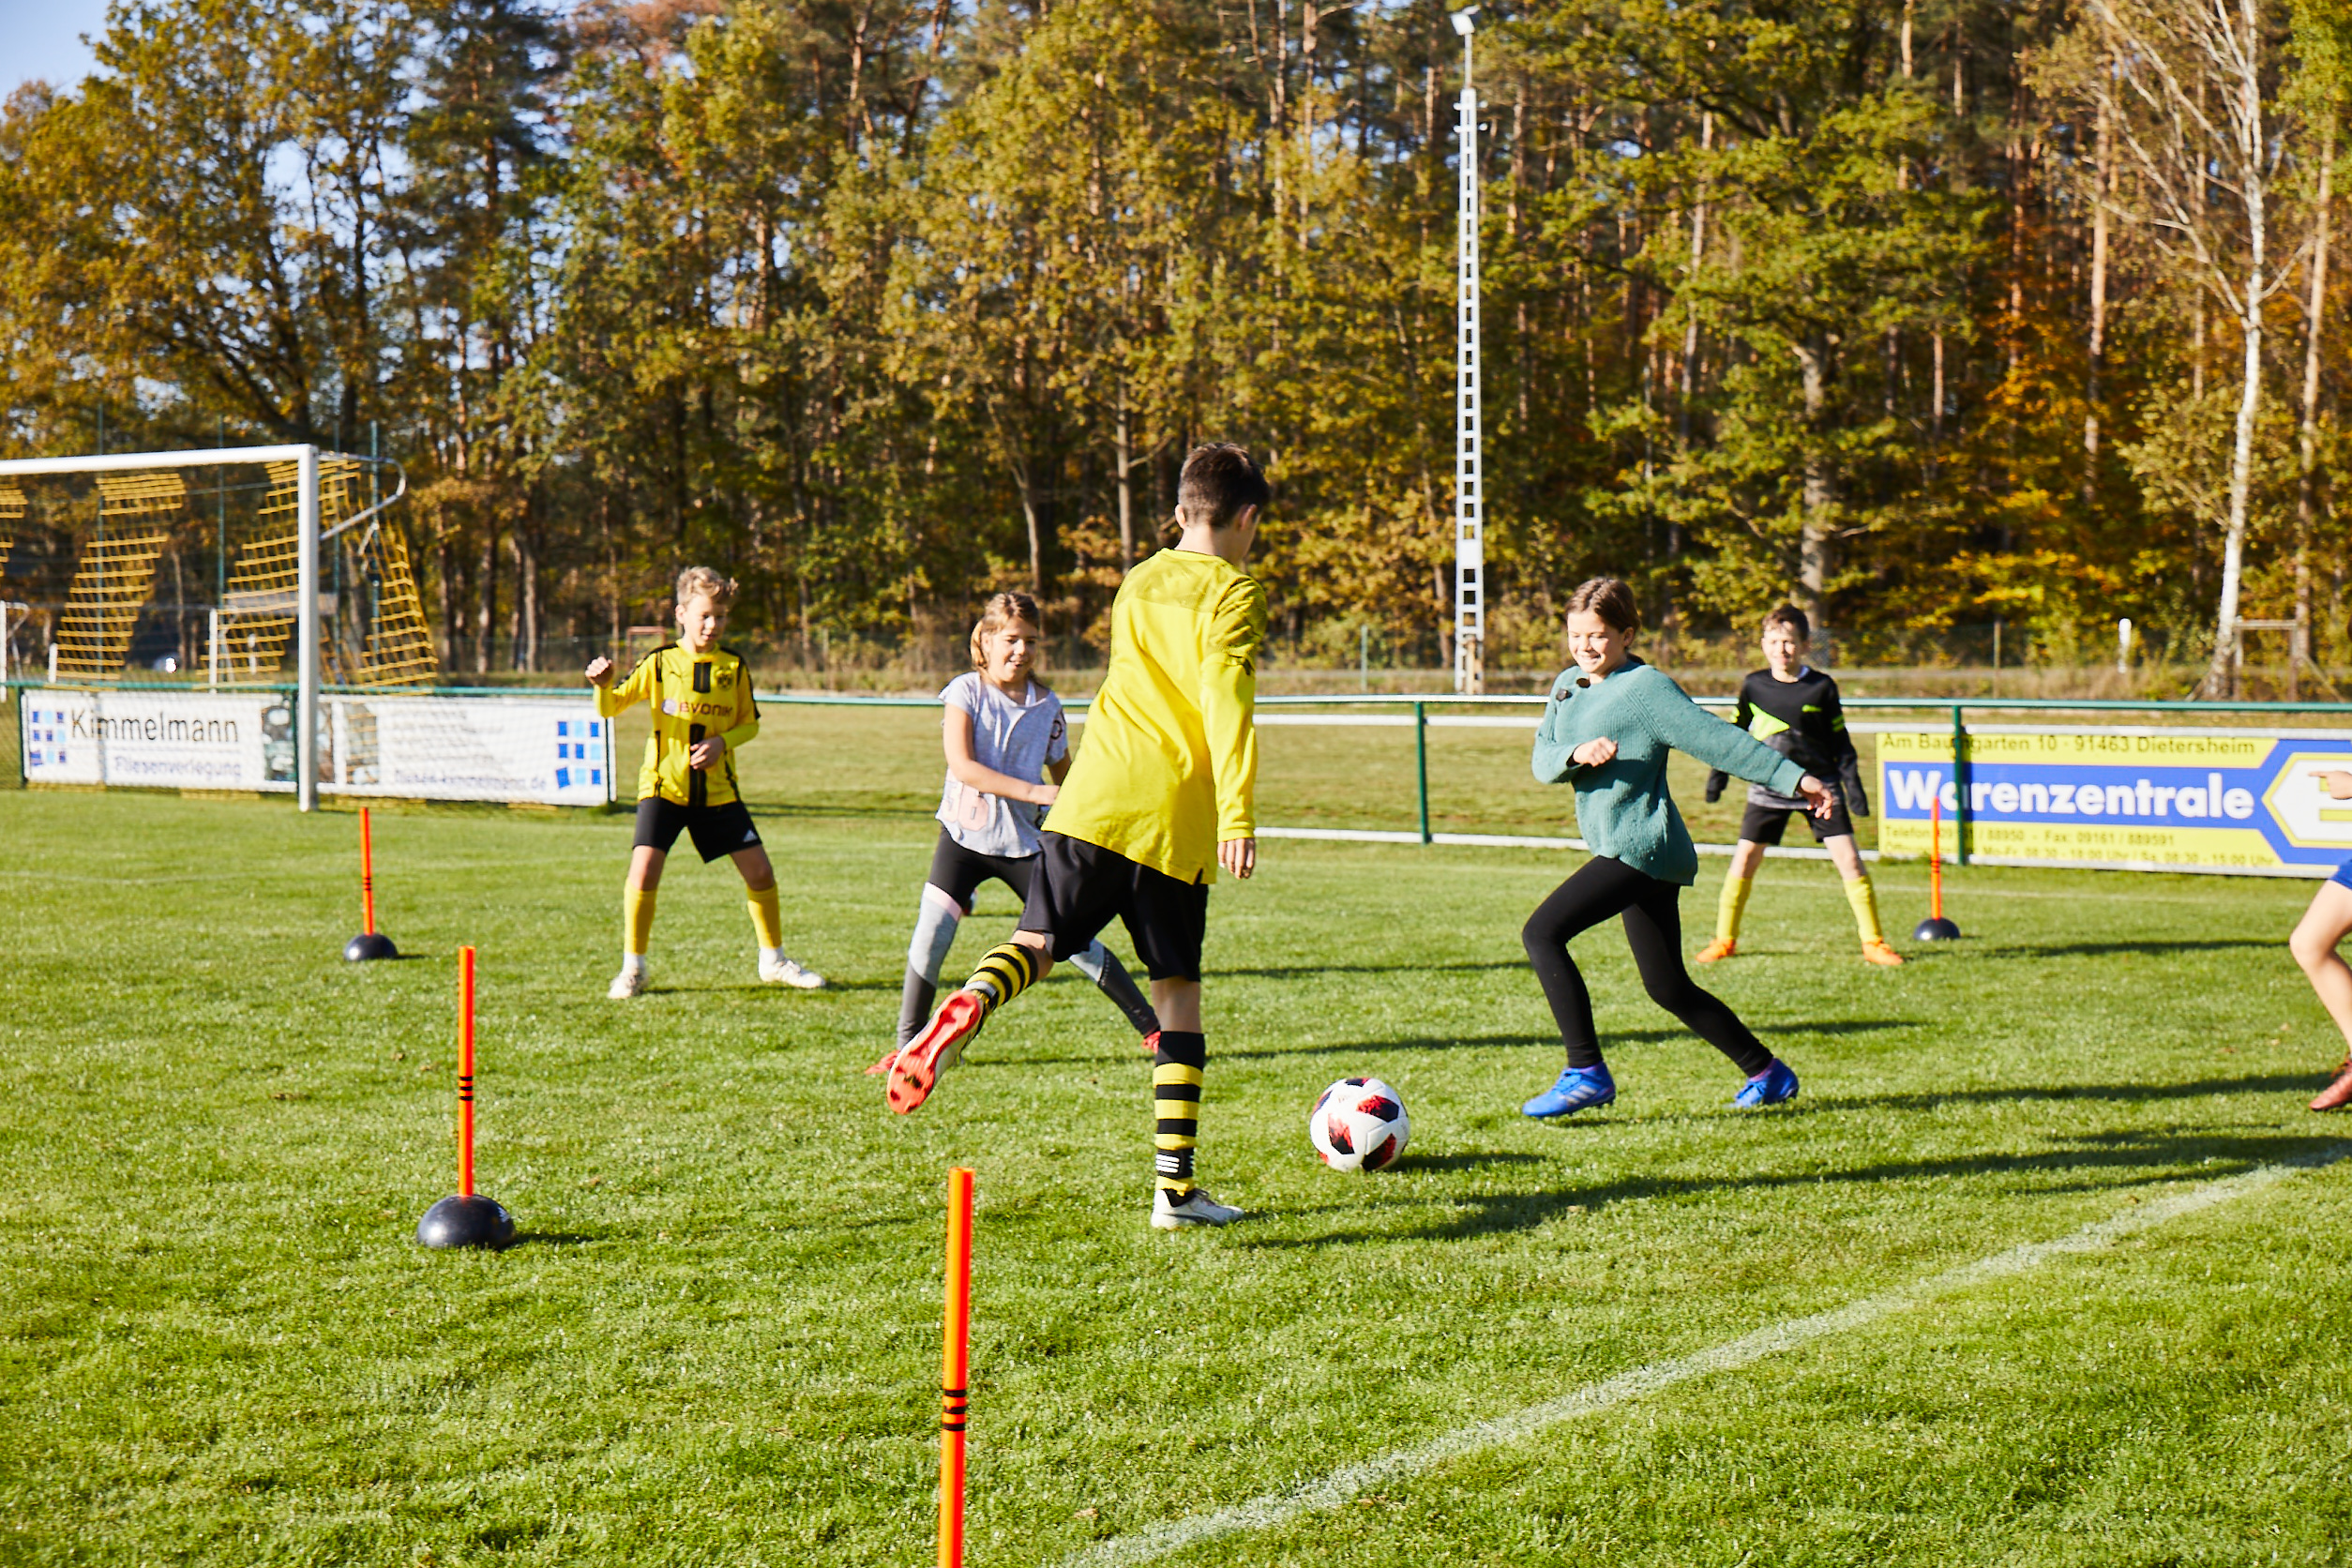 Fussball_Kids_0581